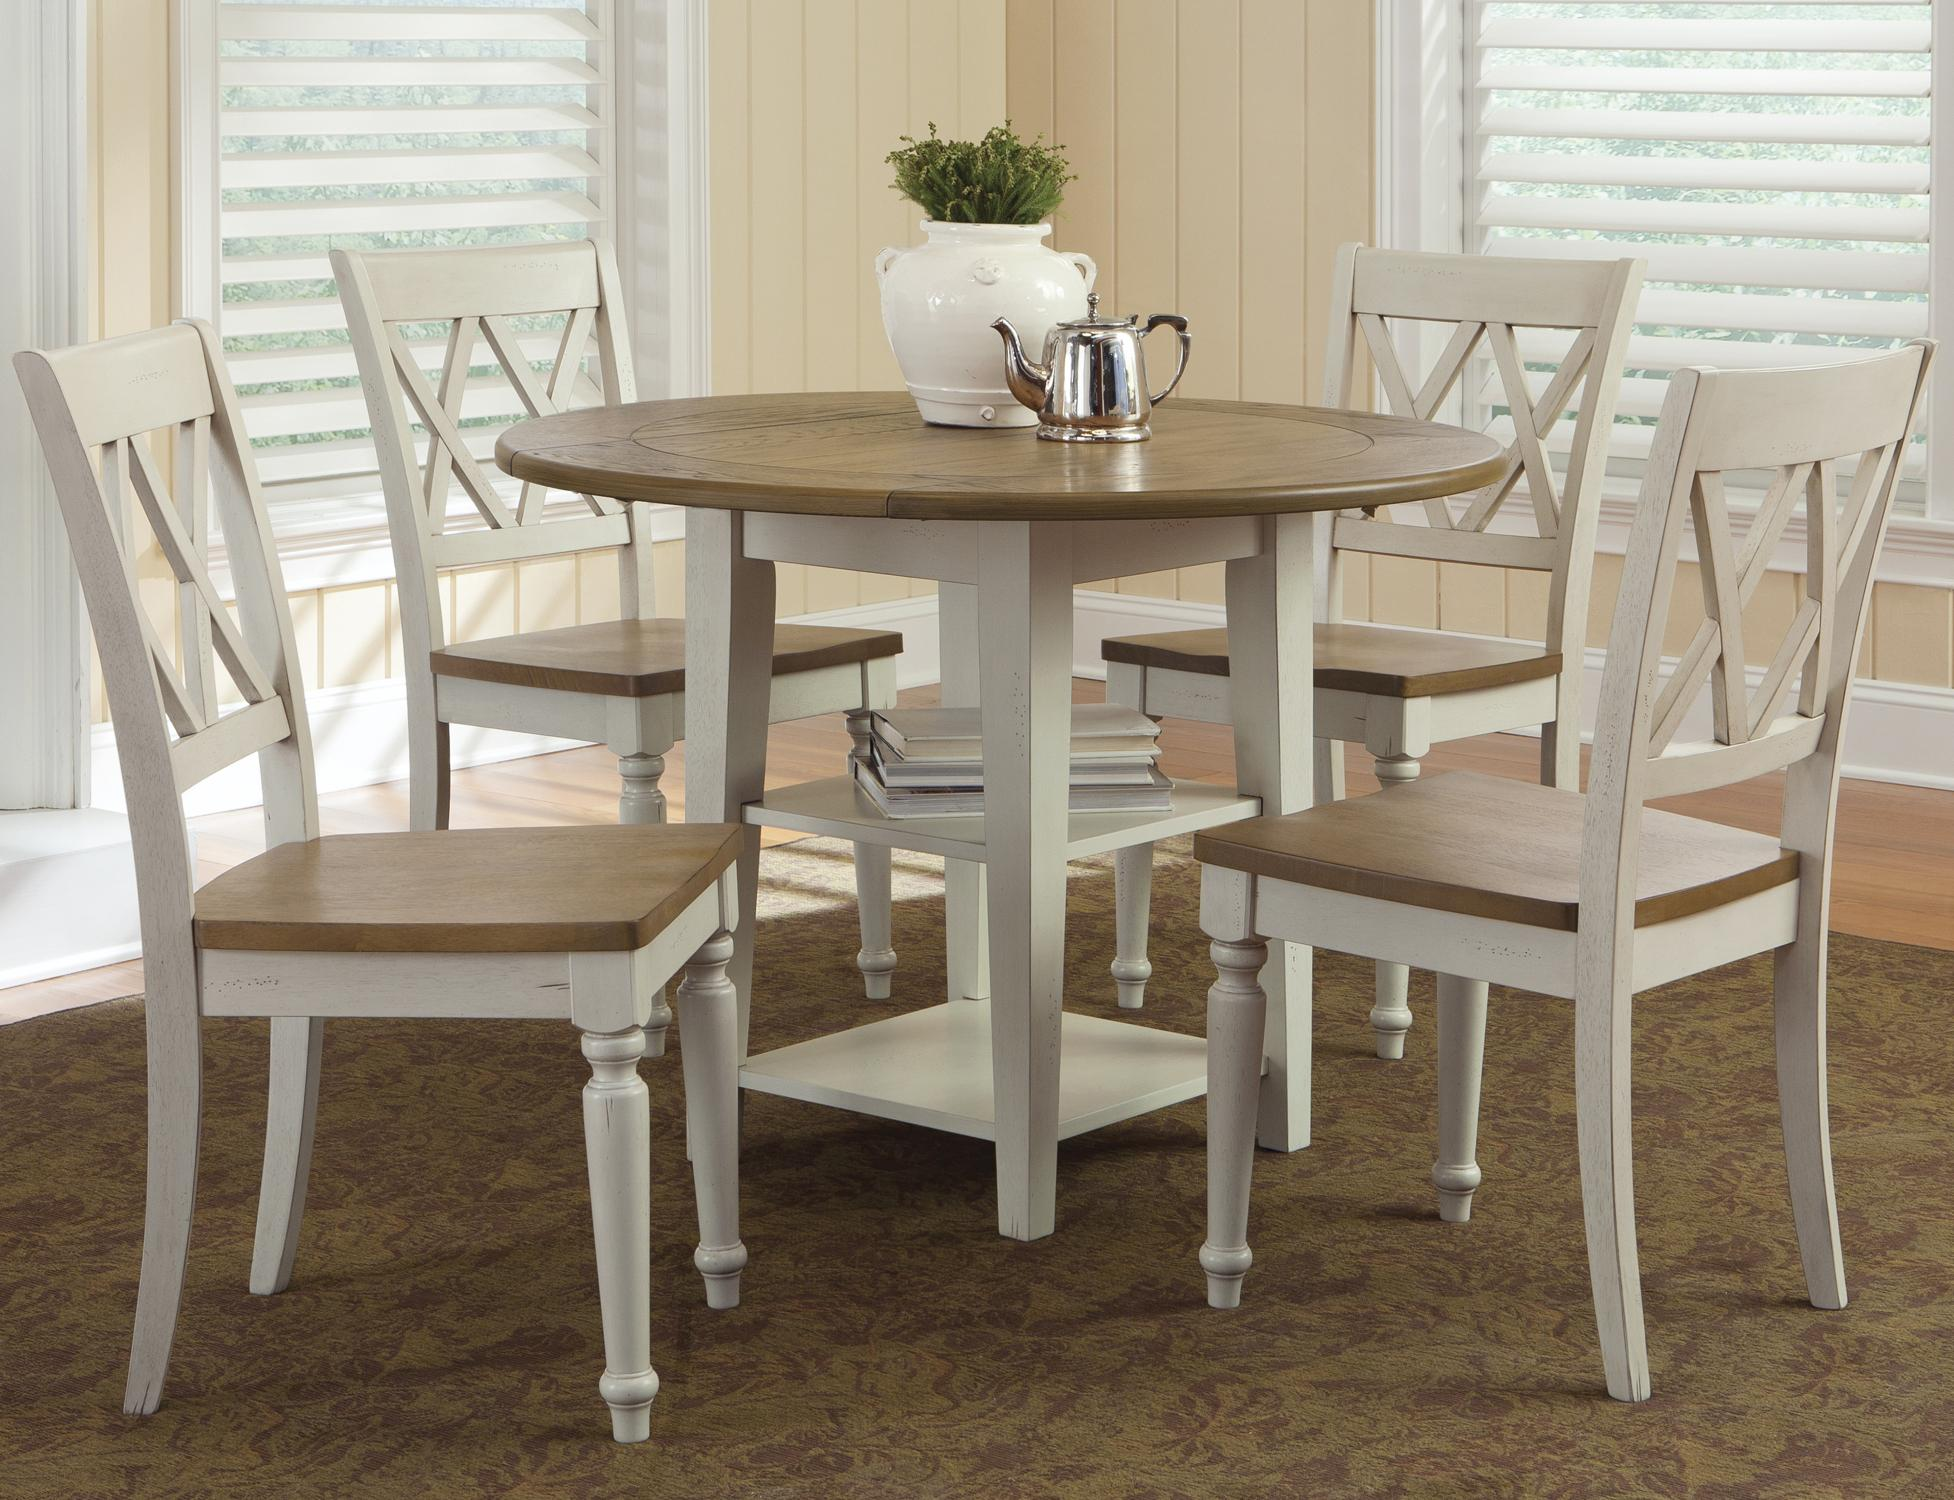 drop leaf kitchen table and chairs aeron chair cylinder replacement liberty furniture al fresco iii five piece 5 set